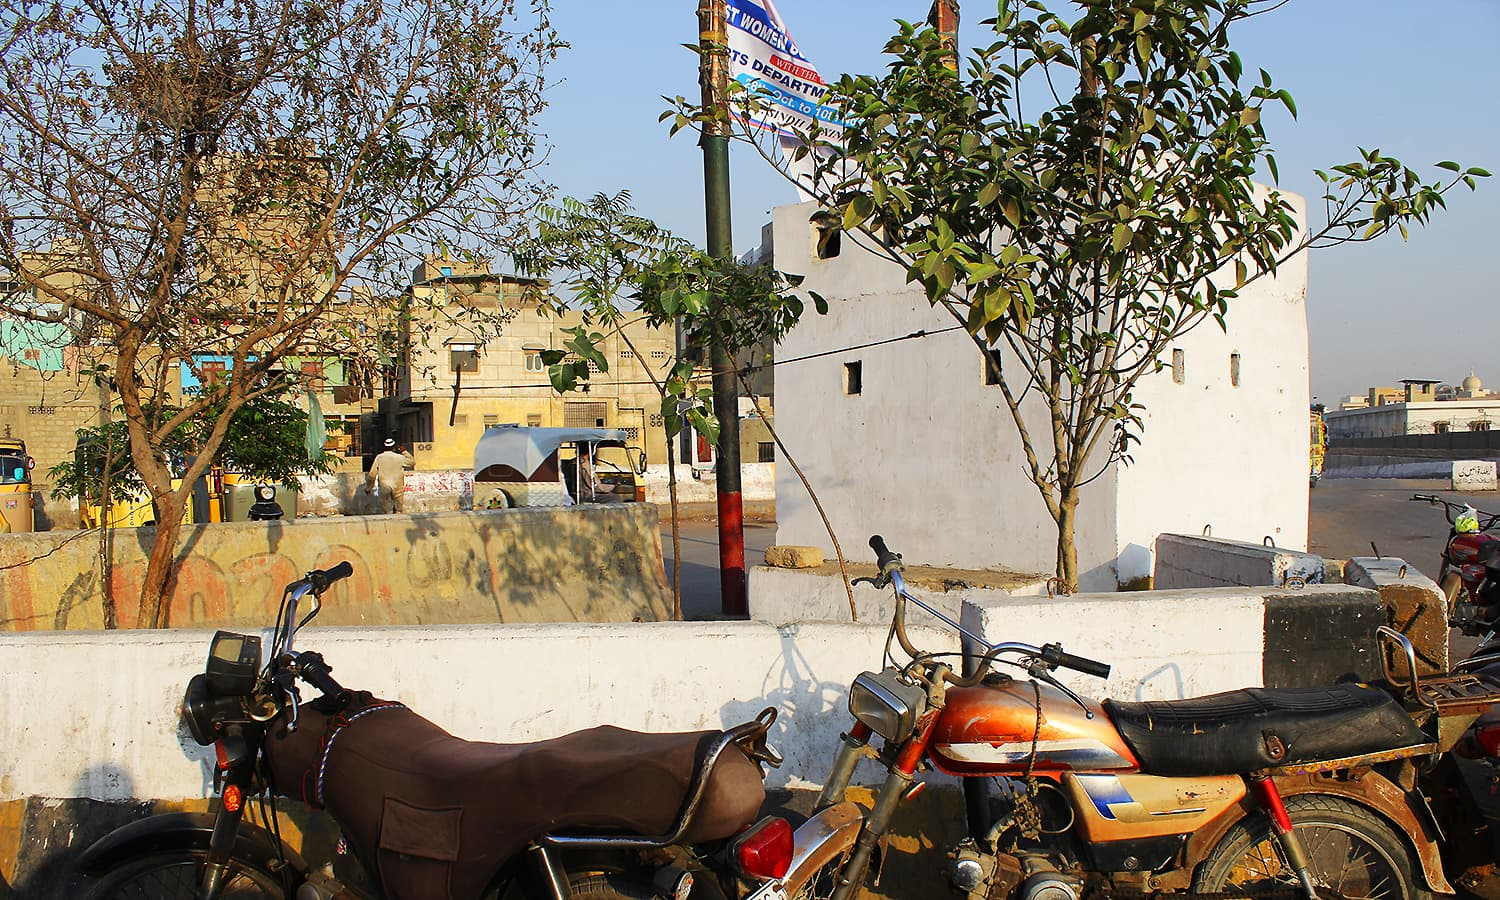 The police chowki at the Sher Shah intersection. ─ Photo by author